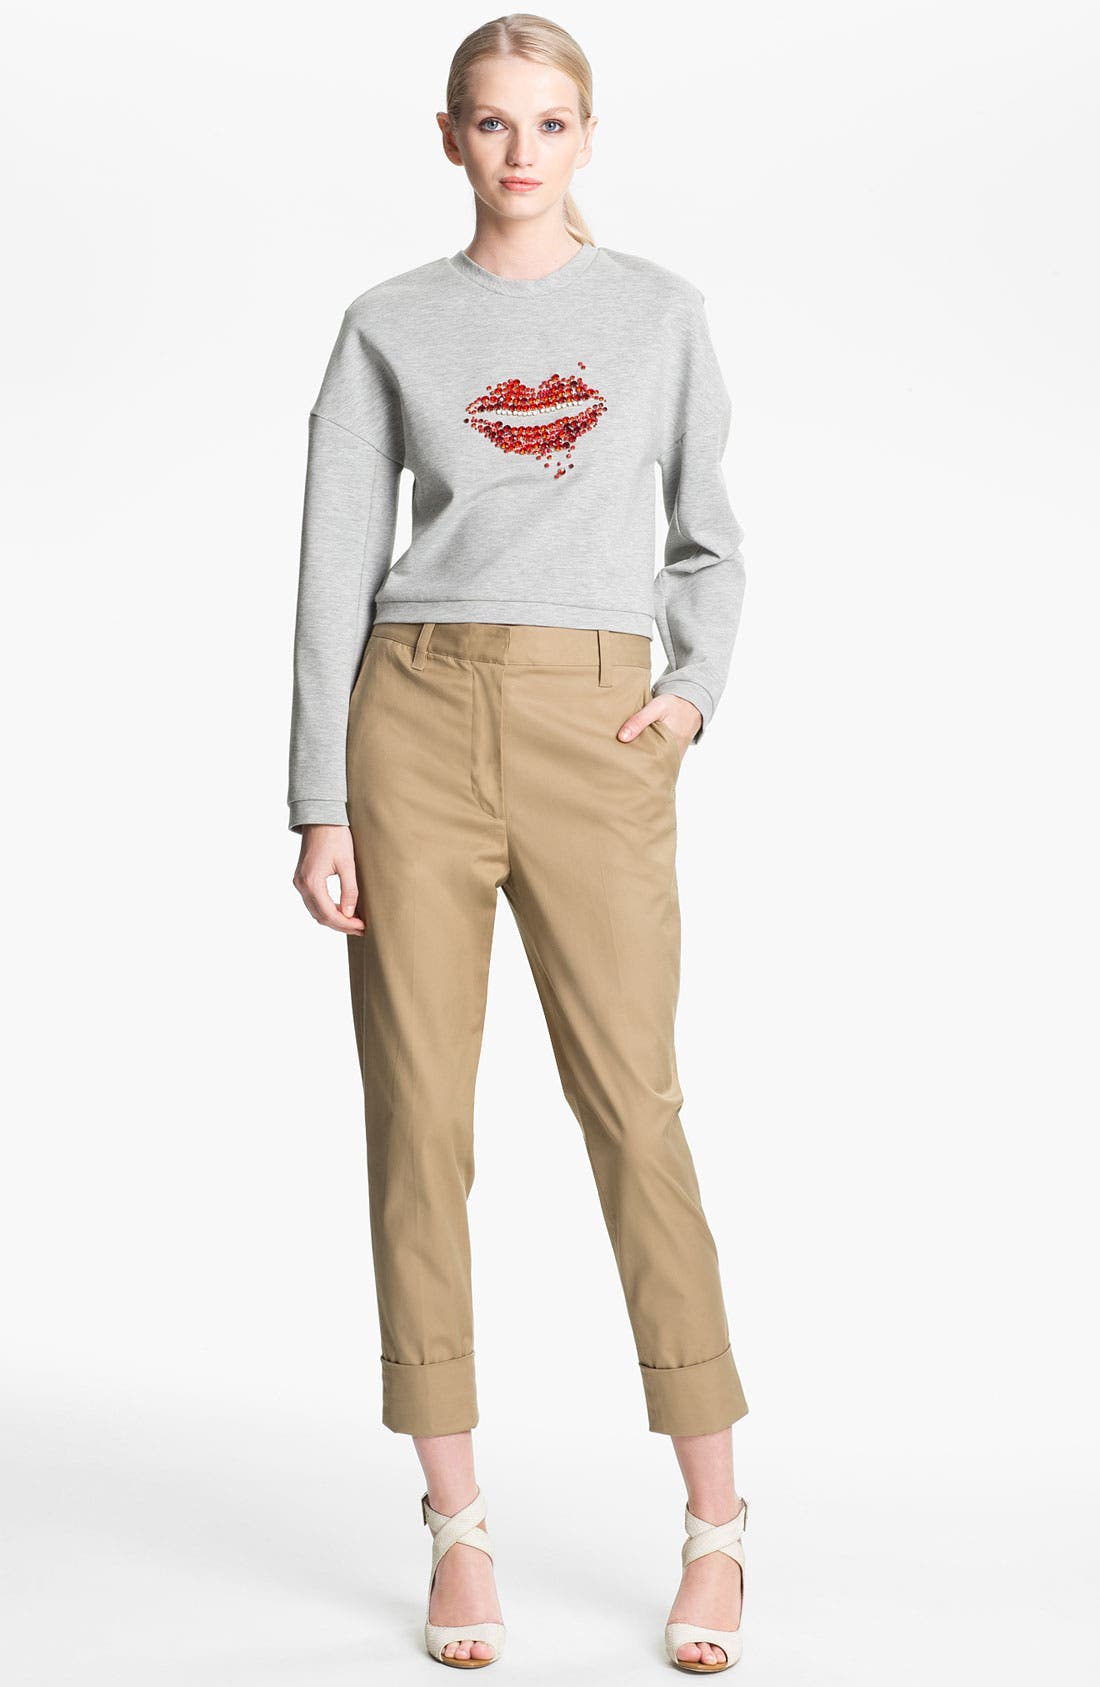 Alternate Image 1 Selected - 3.1 Phillip Lim Bead Embellished Crop Sweatshirt